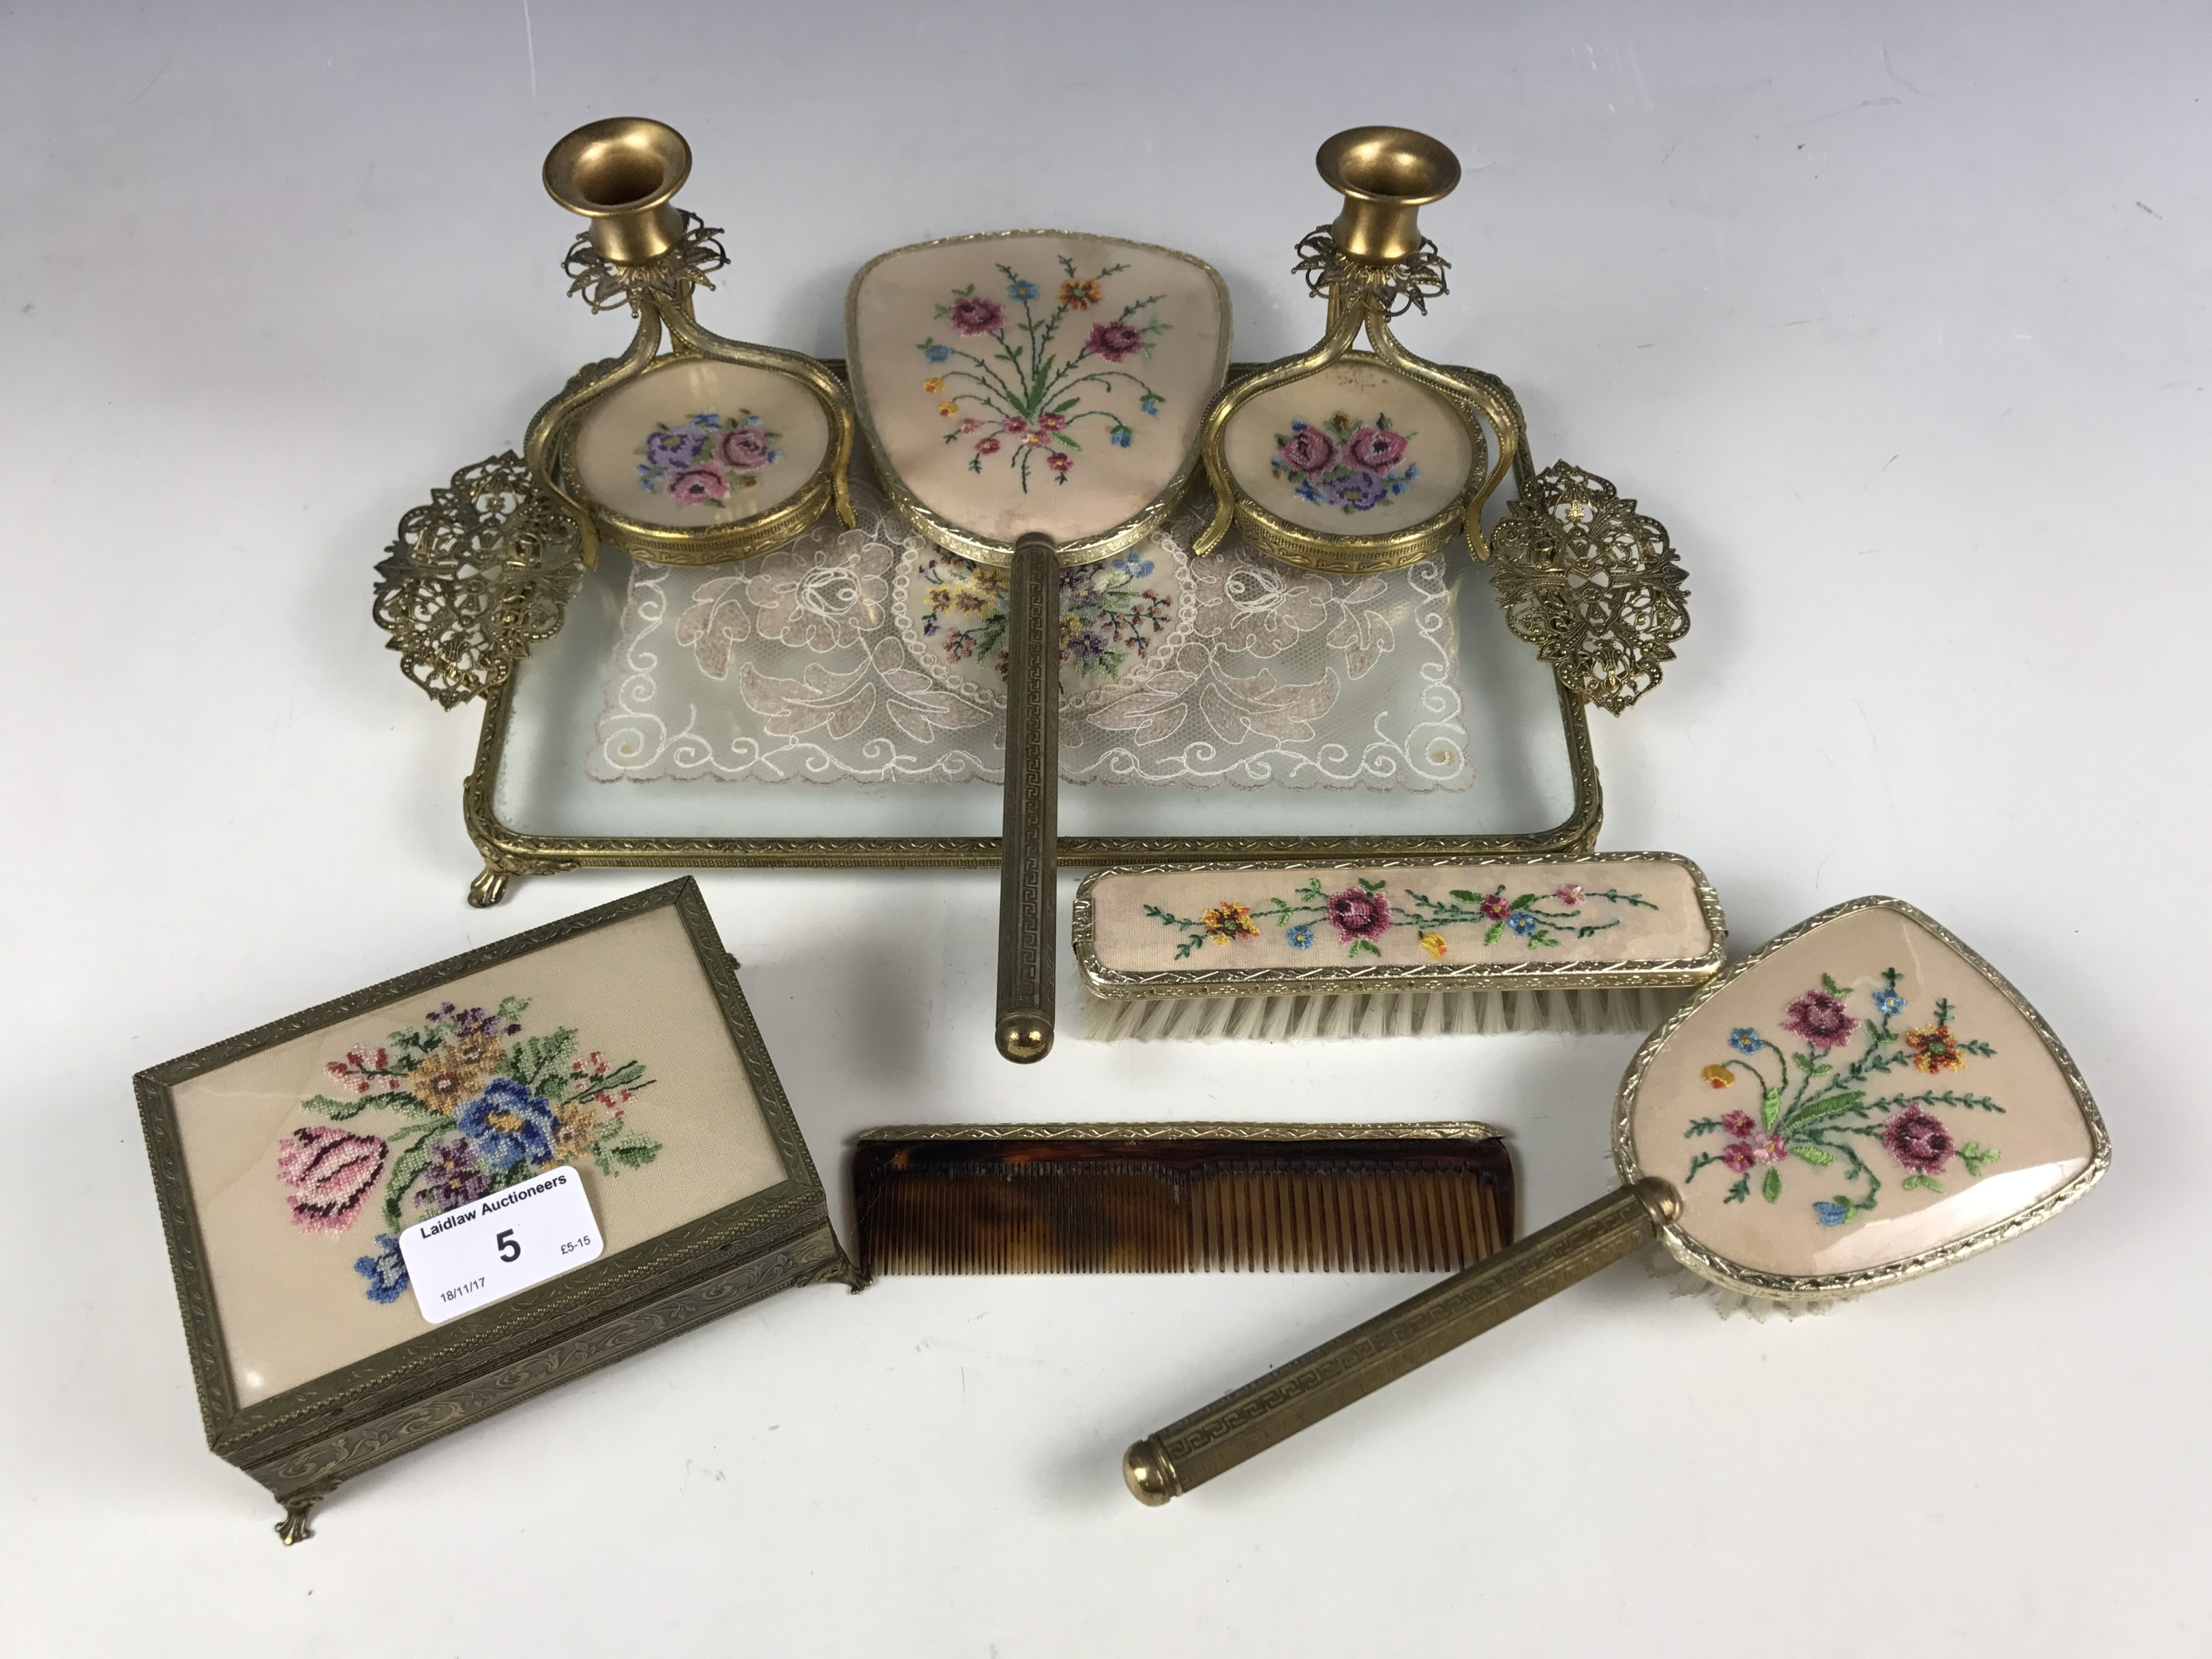 Lot 5 - A 1940's dressing table set